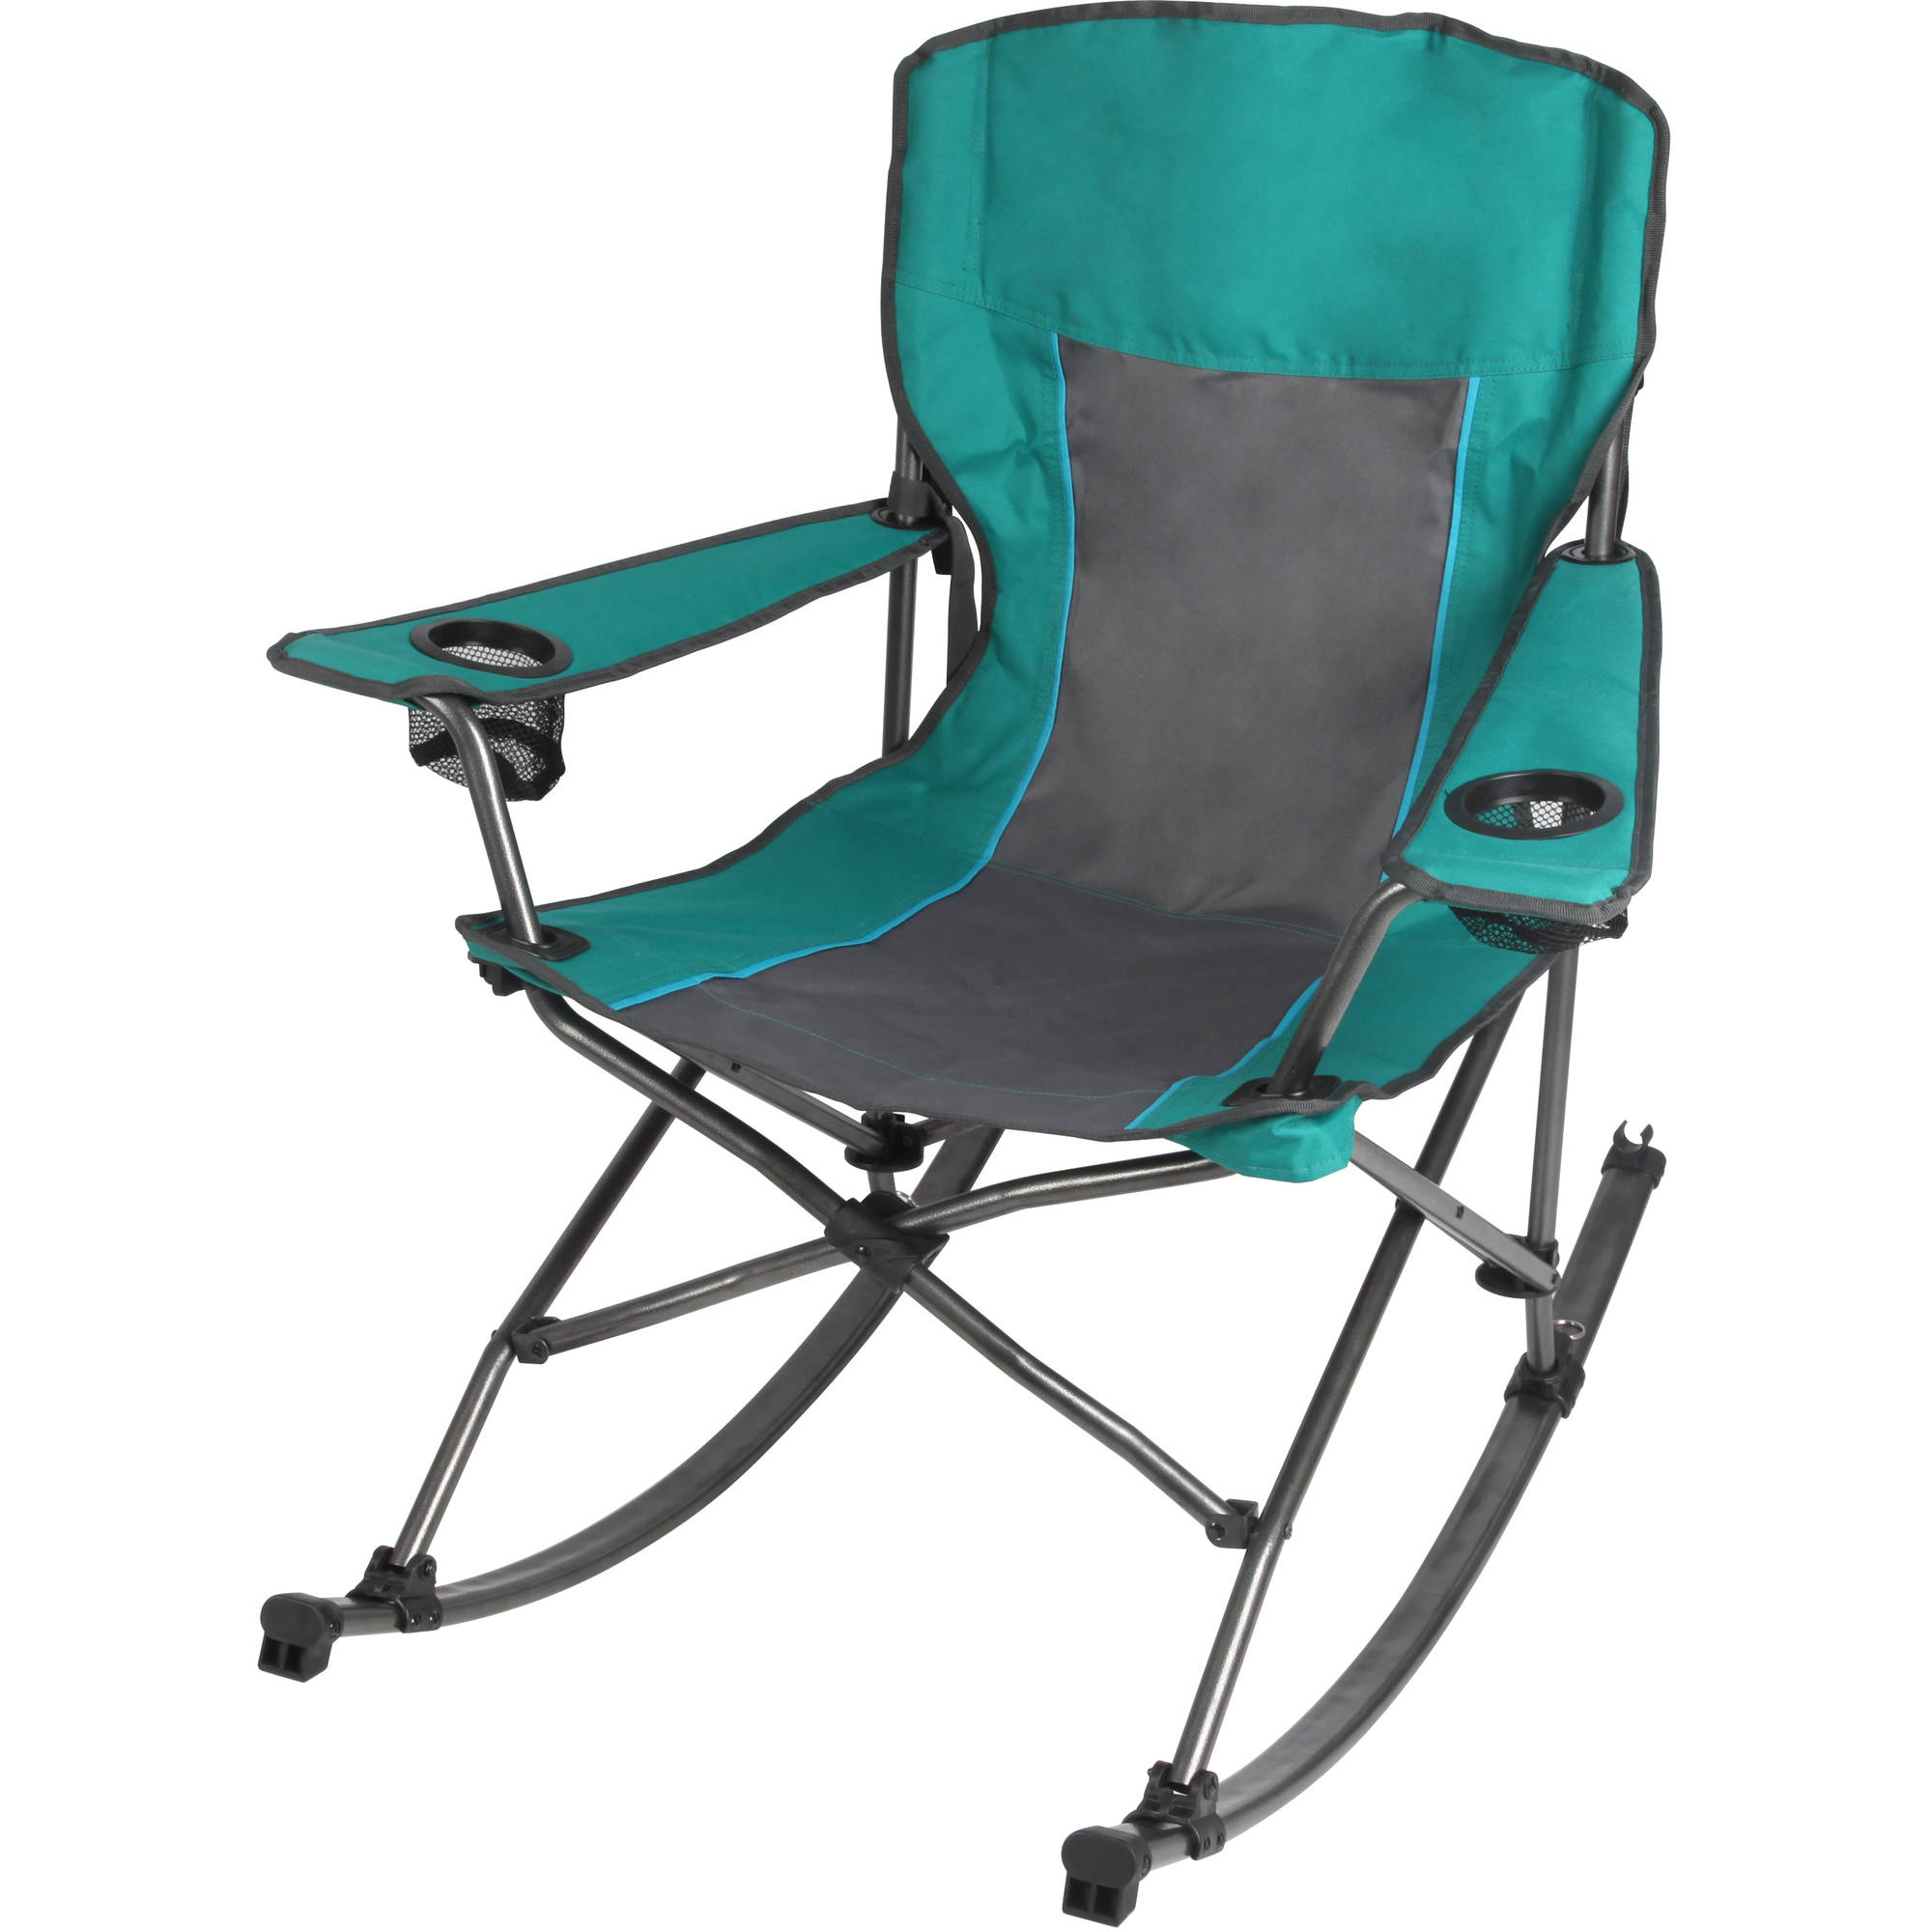 Incredible Ozark Trail Quad Fold Rocking Camp Chair With Cup Holders Green Walmart Com Andrewgaddart Wooden Chair Designs For Living Room Andrewgaddartcom